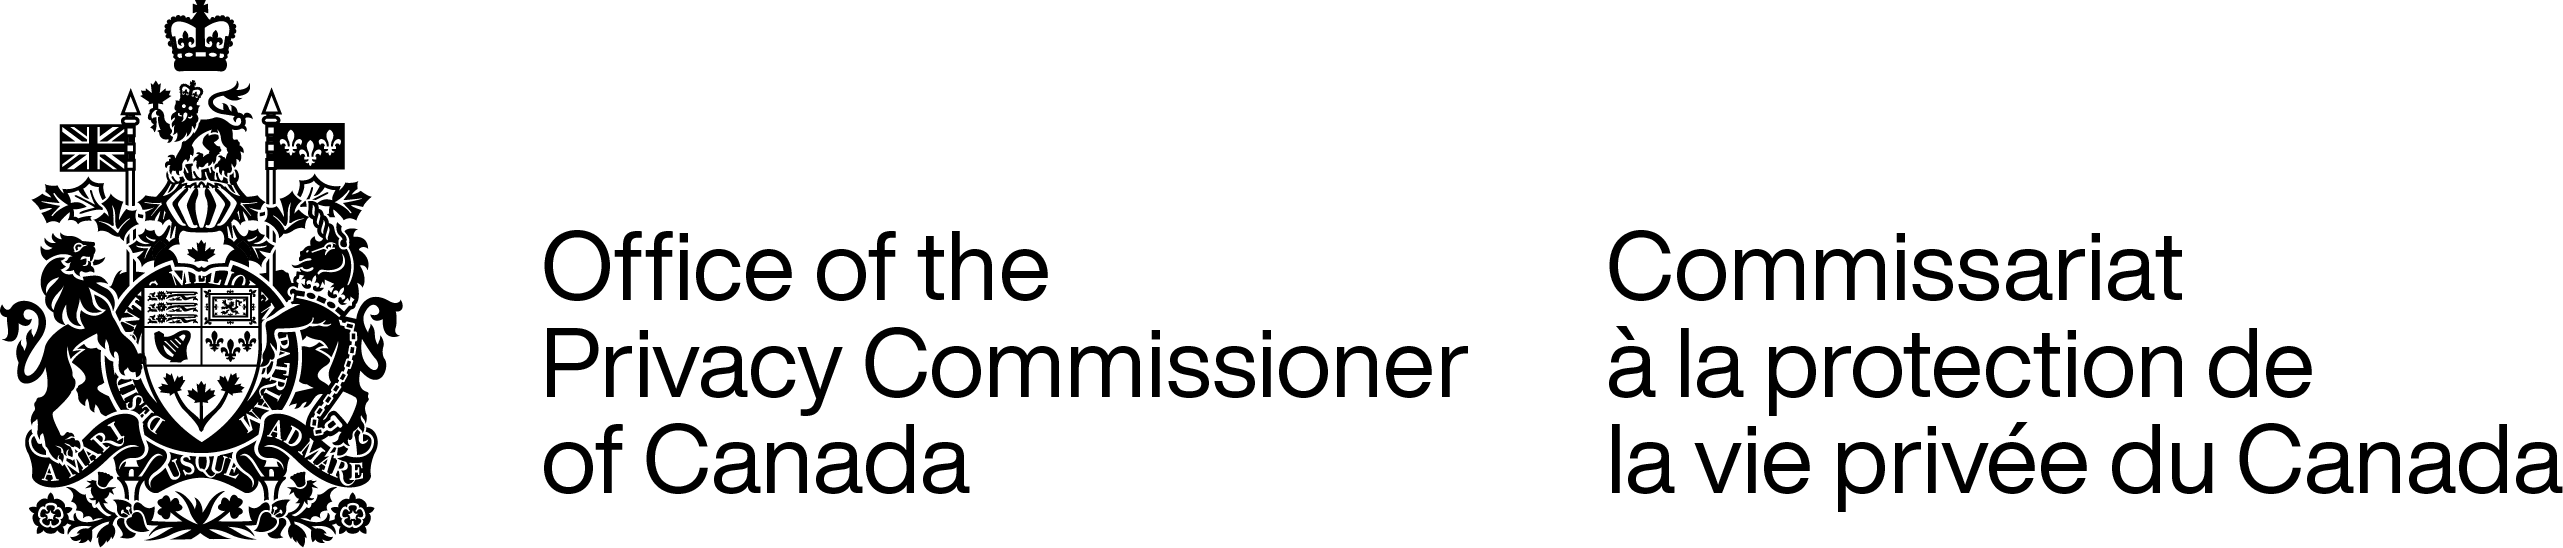 Privacy Review Of The Covid Alert Exposure Notification Application Office Of The Privacy Commissioner Of Canada